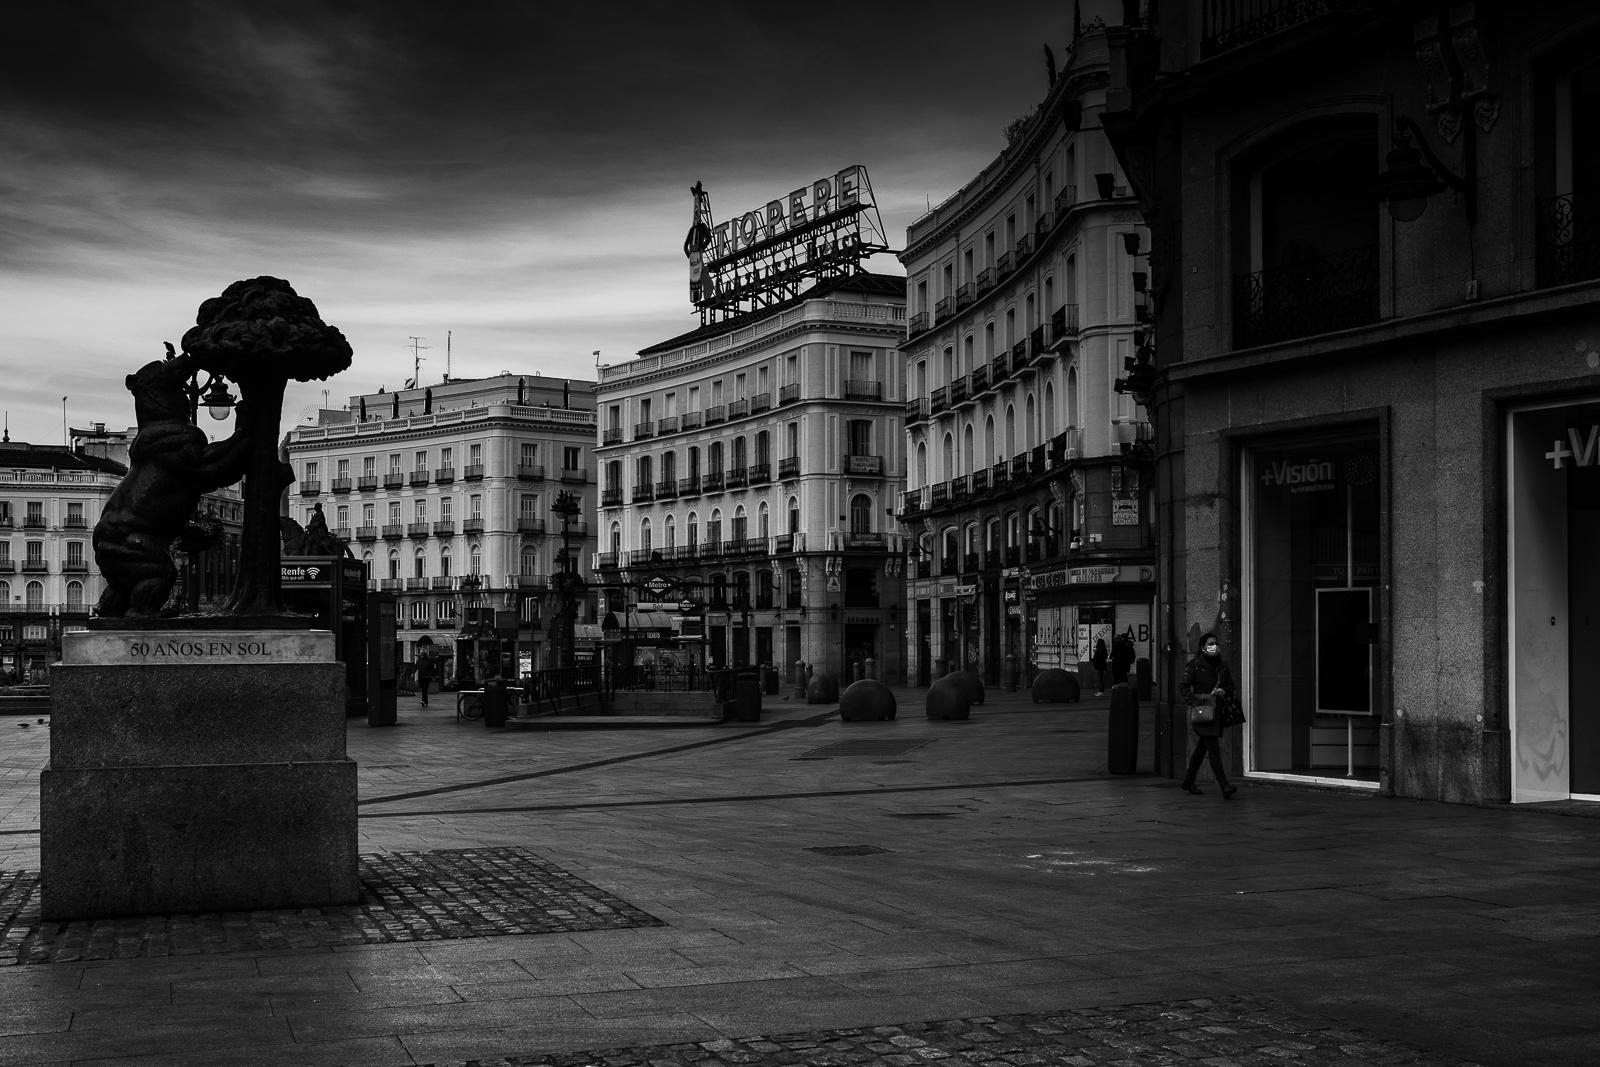 Plaza Sol one of the most imortant turistic places of Madrid city center durinfg the national lockdown amid coronavirus pandemic.